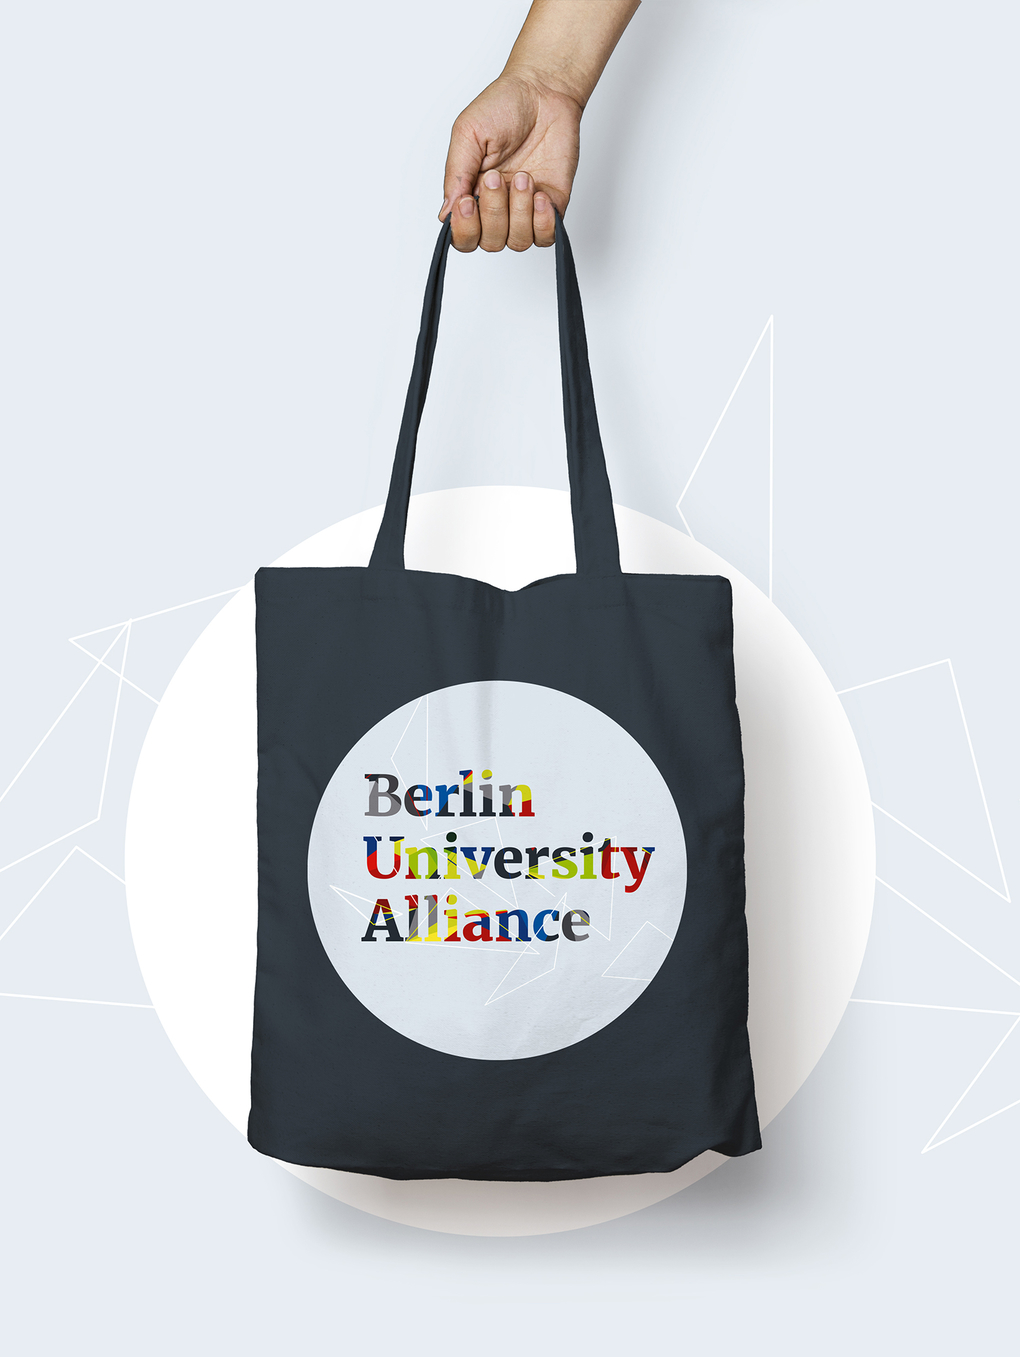 Berlin University Alliance Begehung Werbemittel